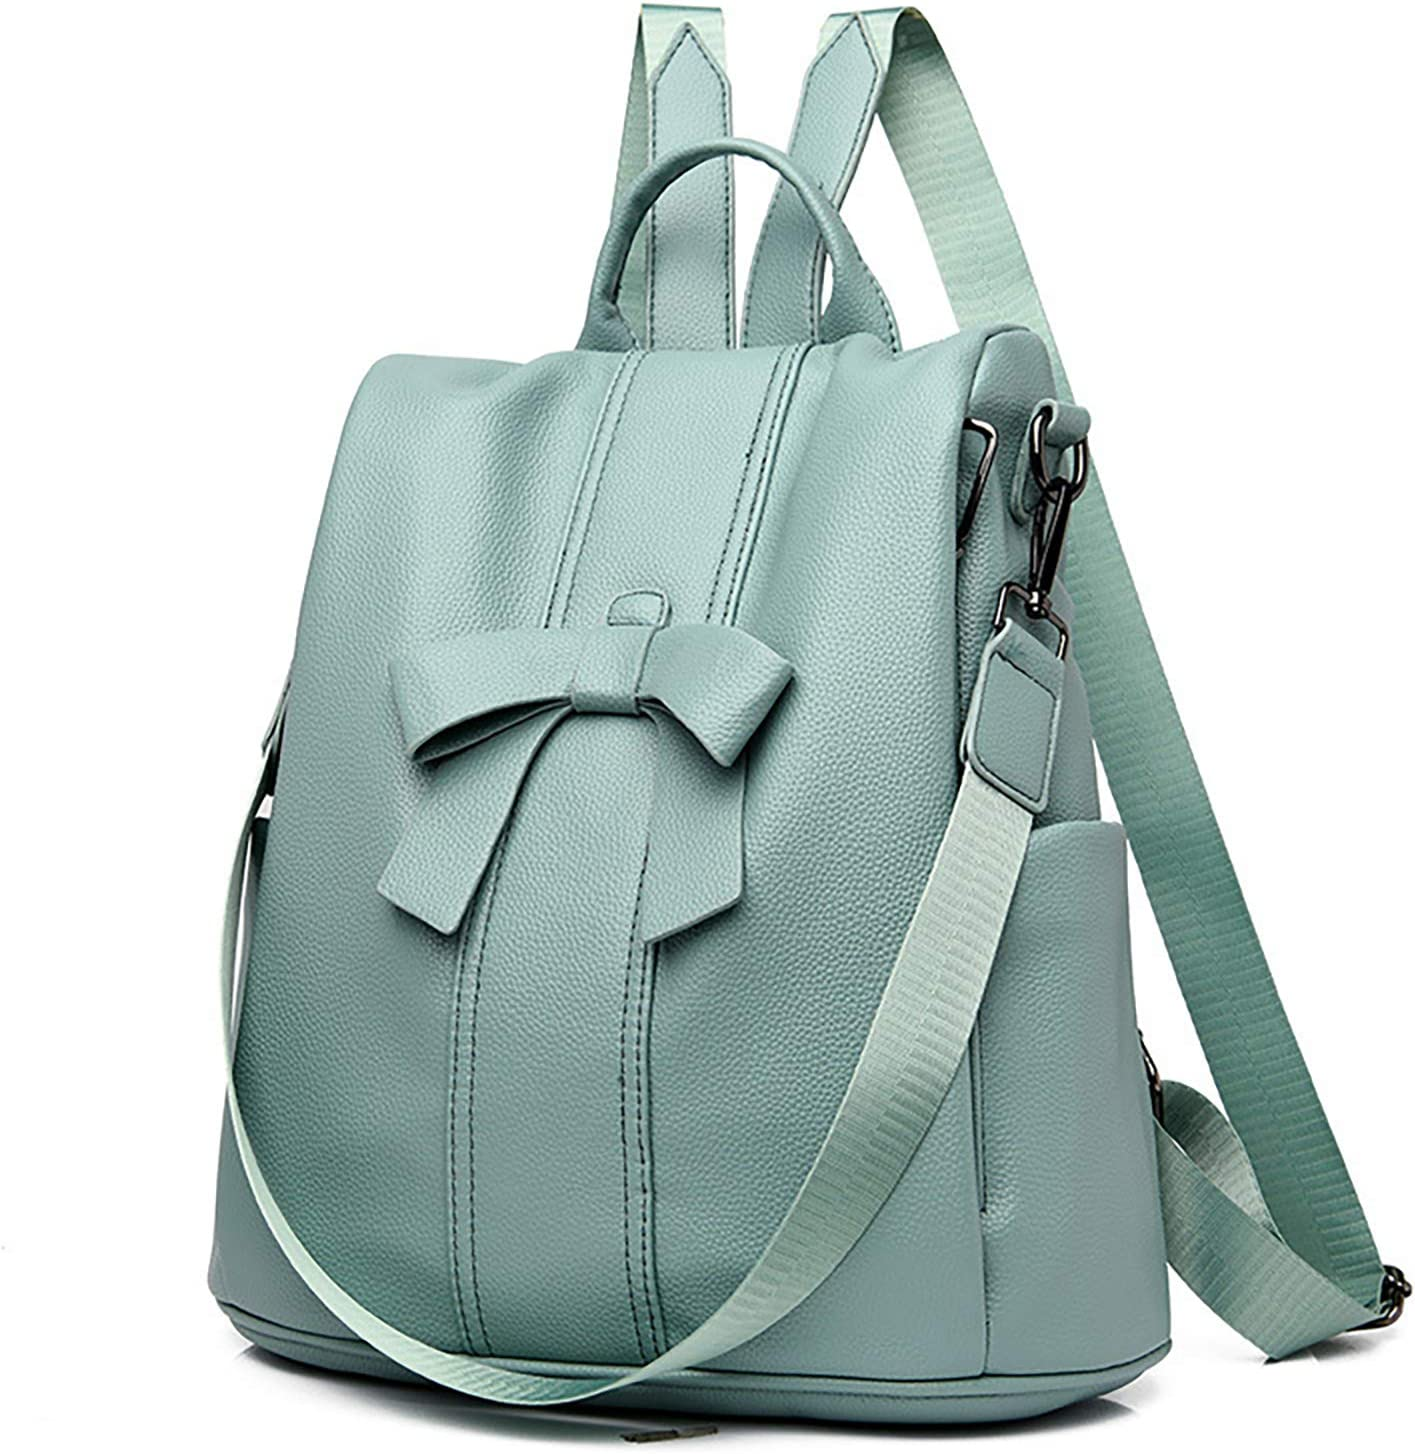 ZhaoZC Ladies Shoulder Bags, Backpack Purse for Women Fashion Leather Designer Travel Gift for Woman,Apple Green